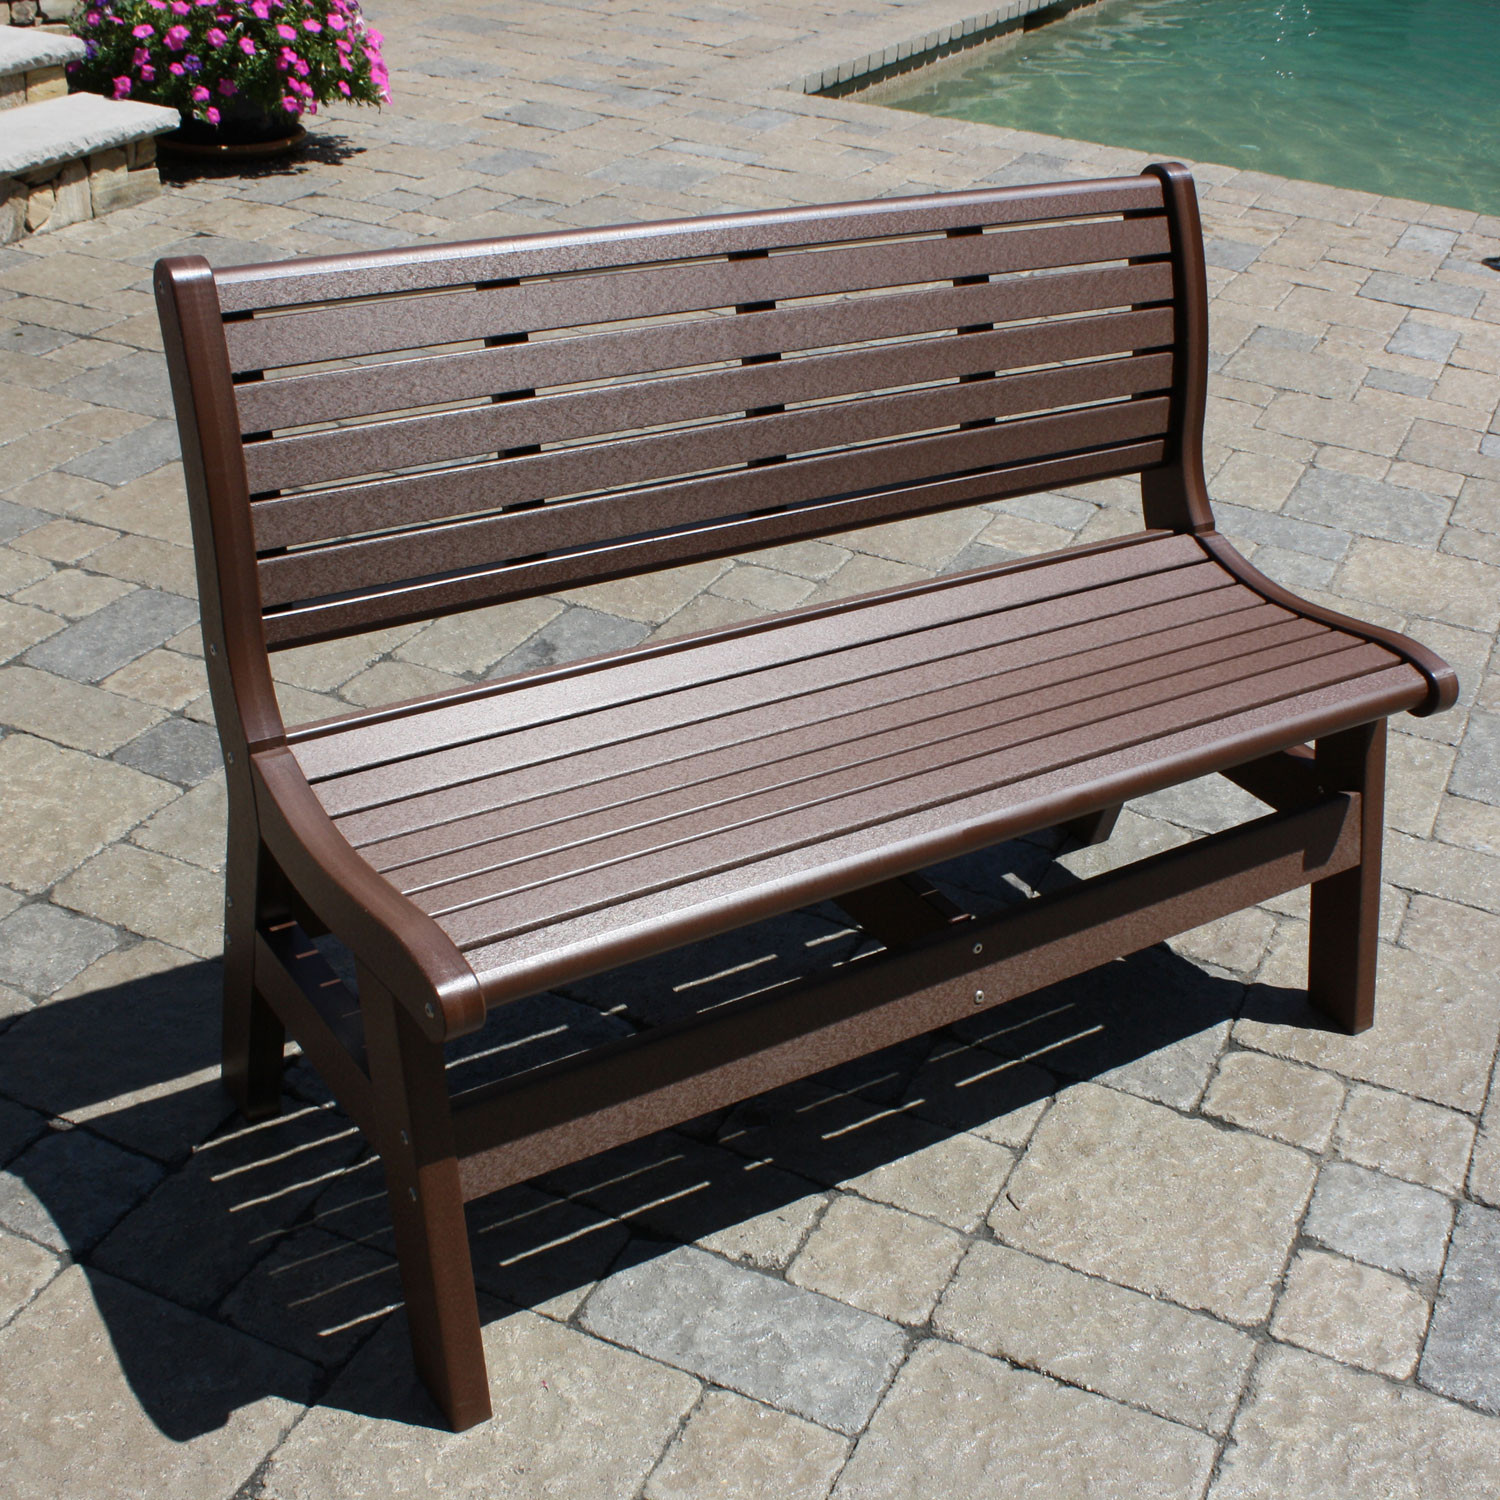 Malibu Outdoor Newport 48 in Bench with Back